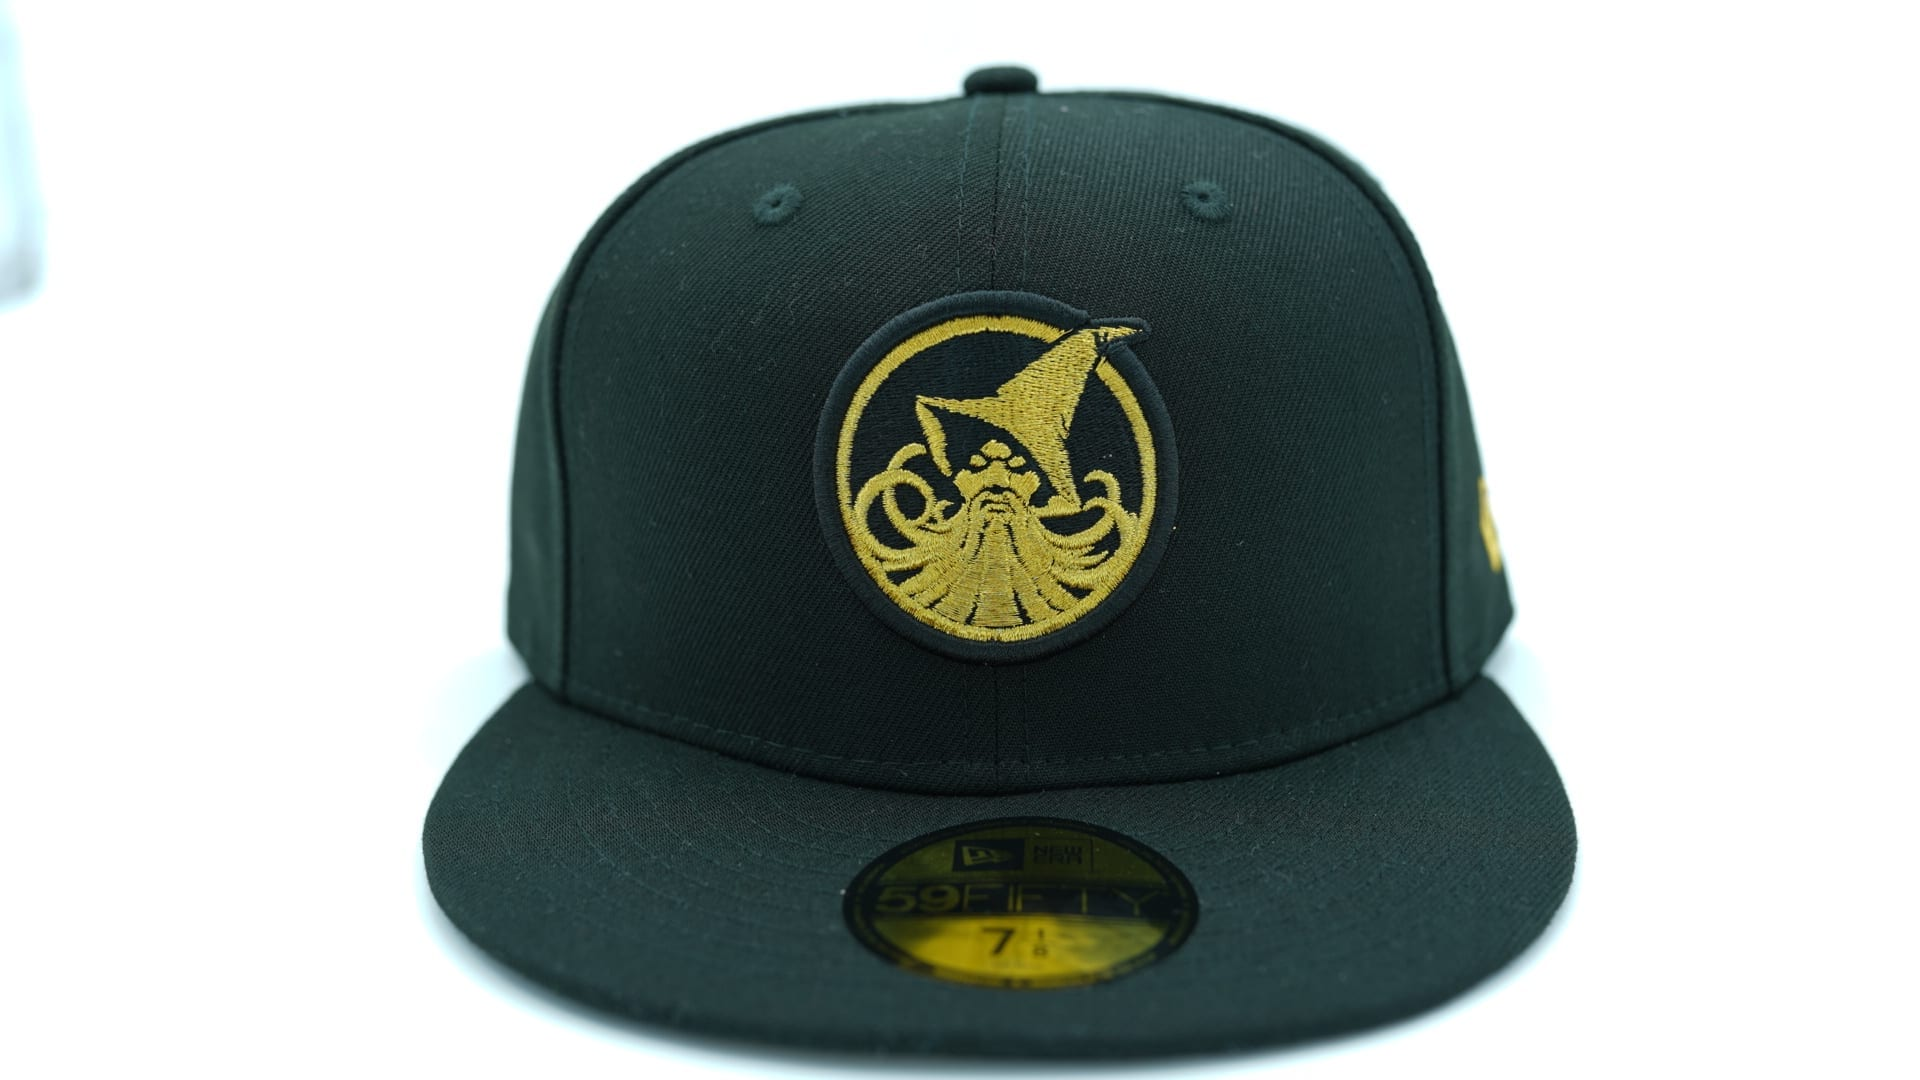 1155ee48896 top-5-fitted-caps-baseball-jordan-kicks-bugs-. Sneakerheads attention! The  Retro ...